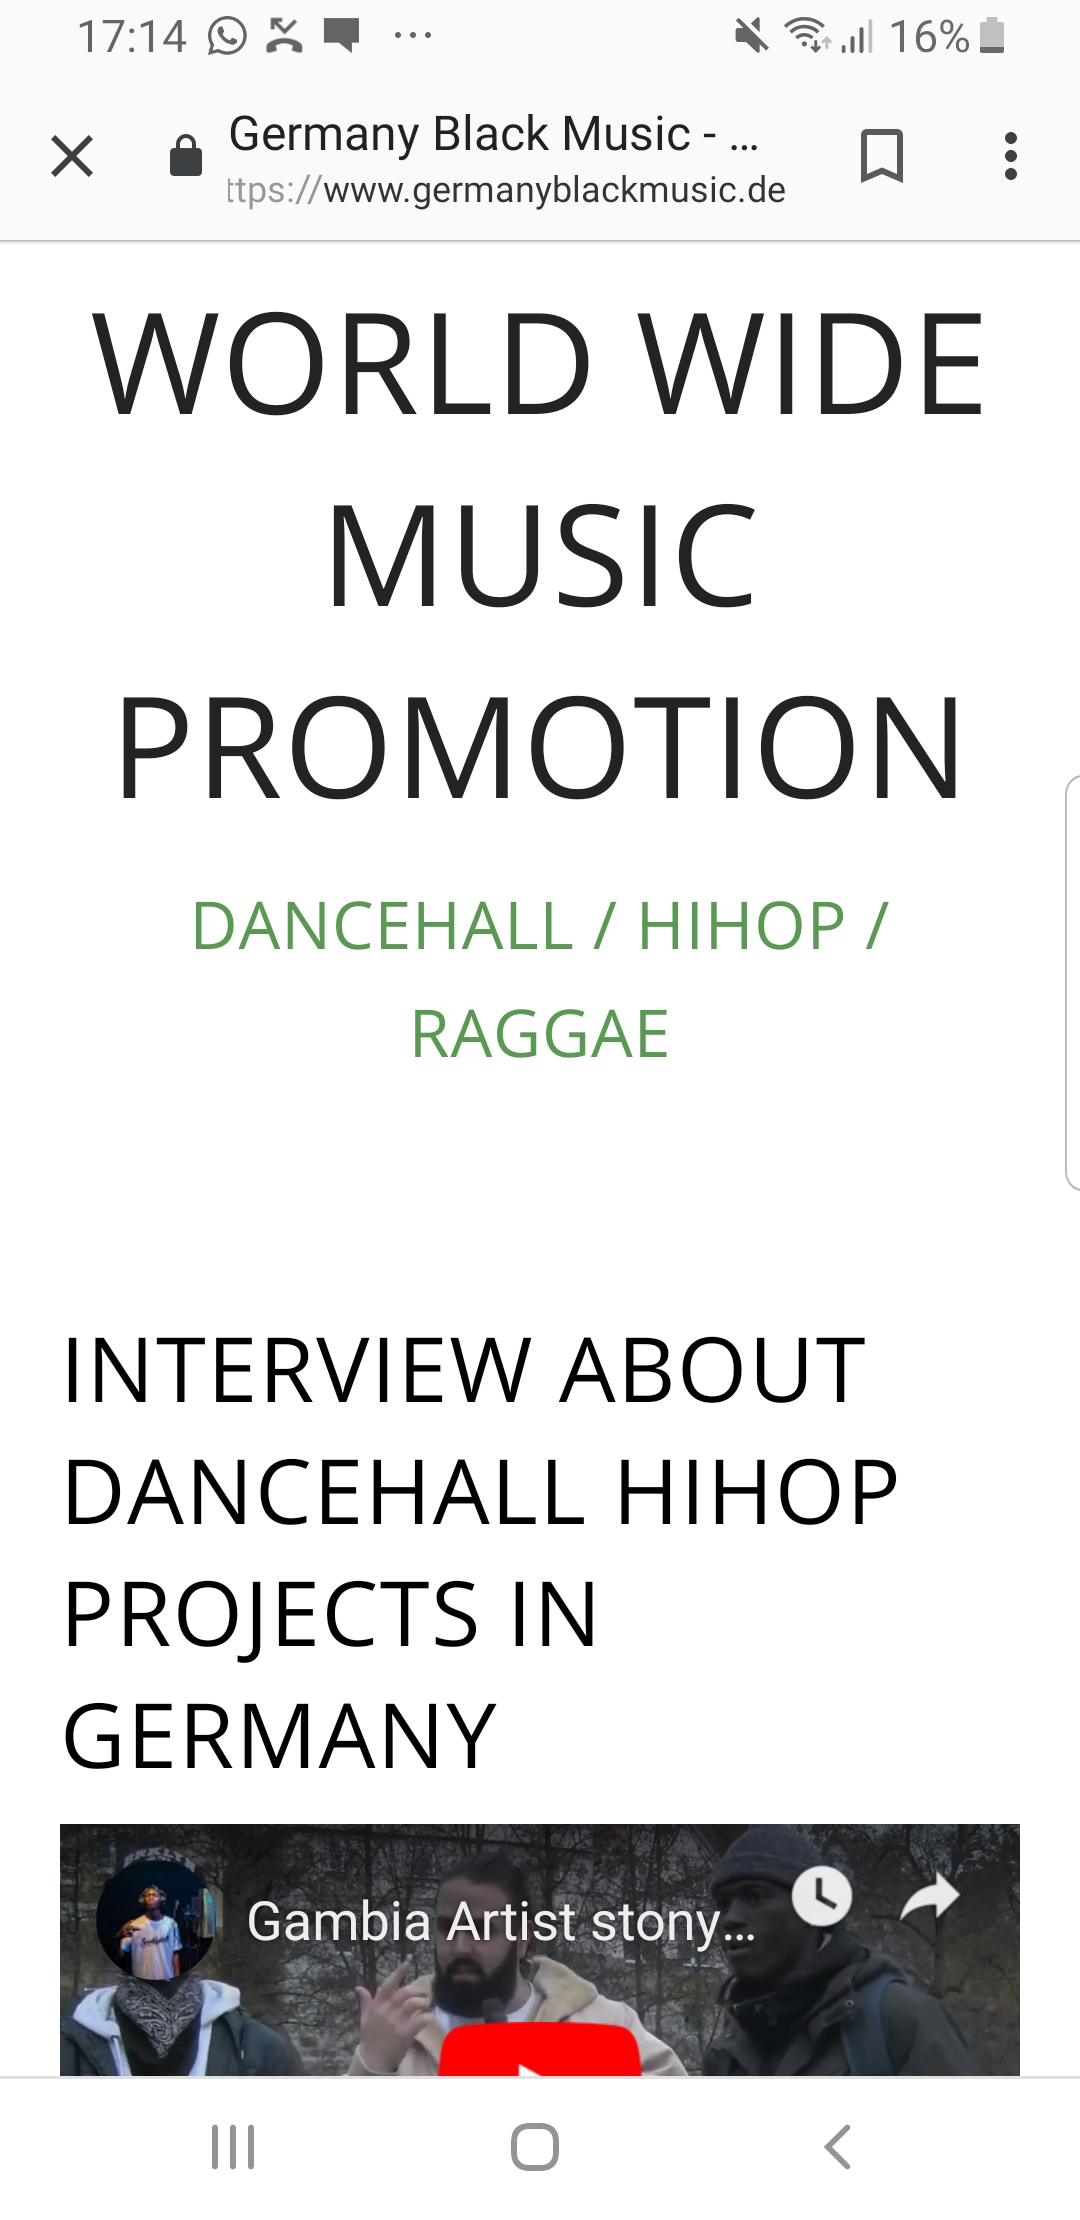 Website promotion for hihop and dancehall in germany